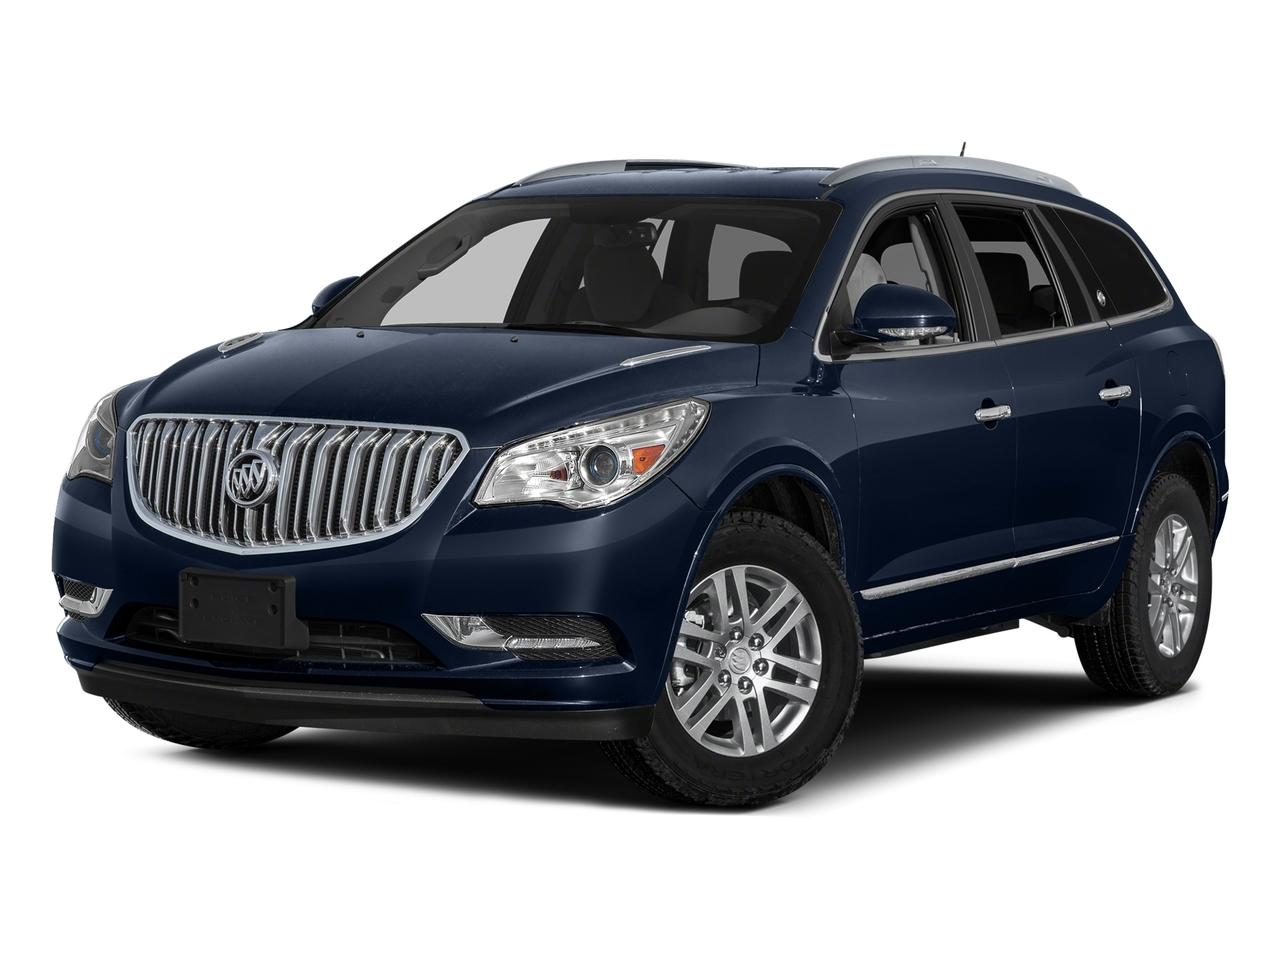 2017 Buick Enclave Vehicle Photo in Owensboro, KY 42303